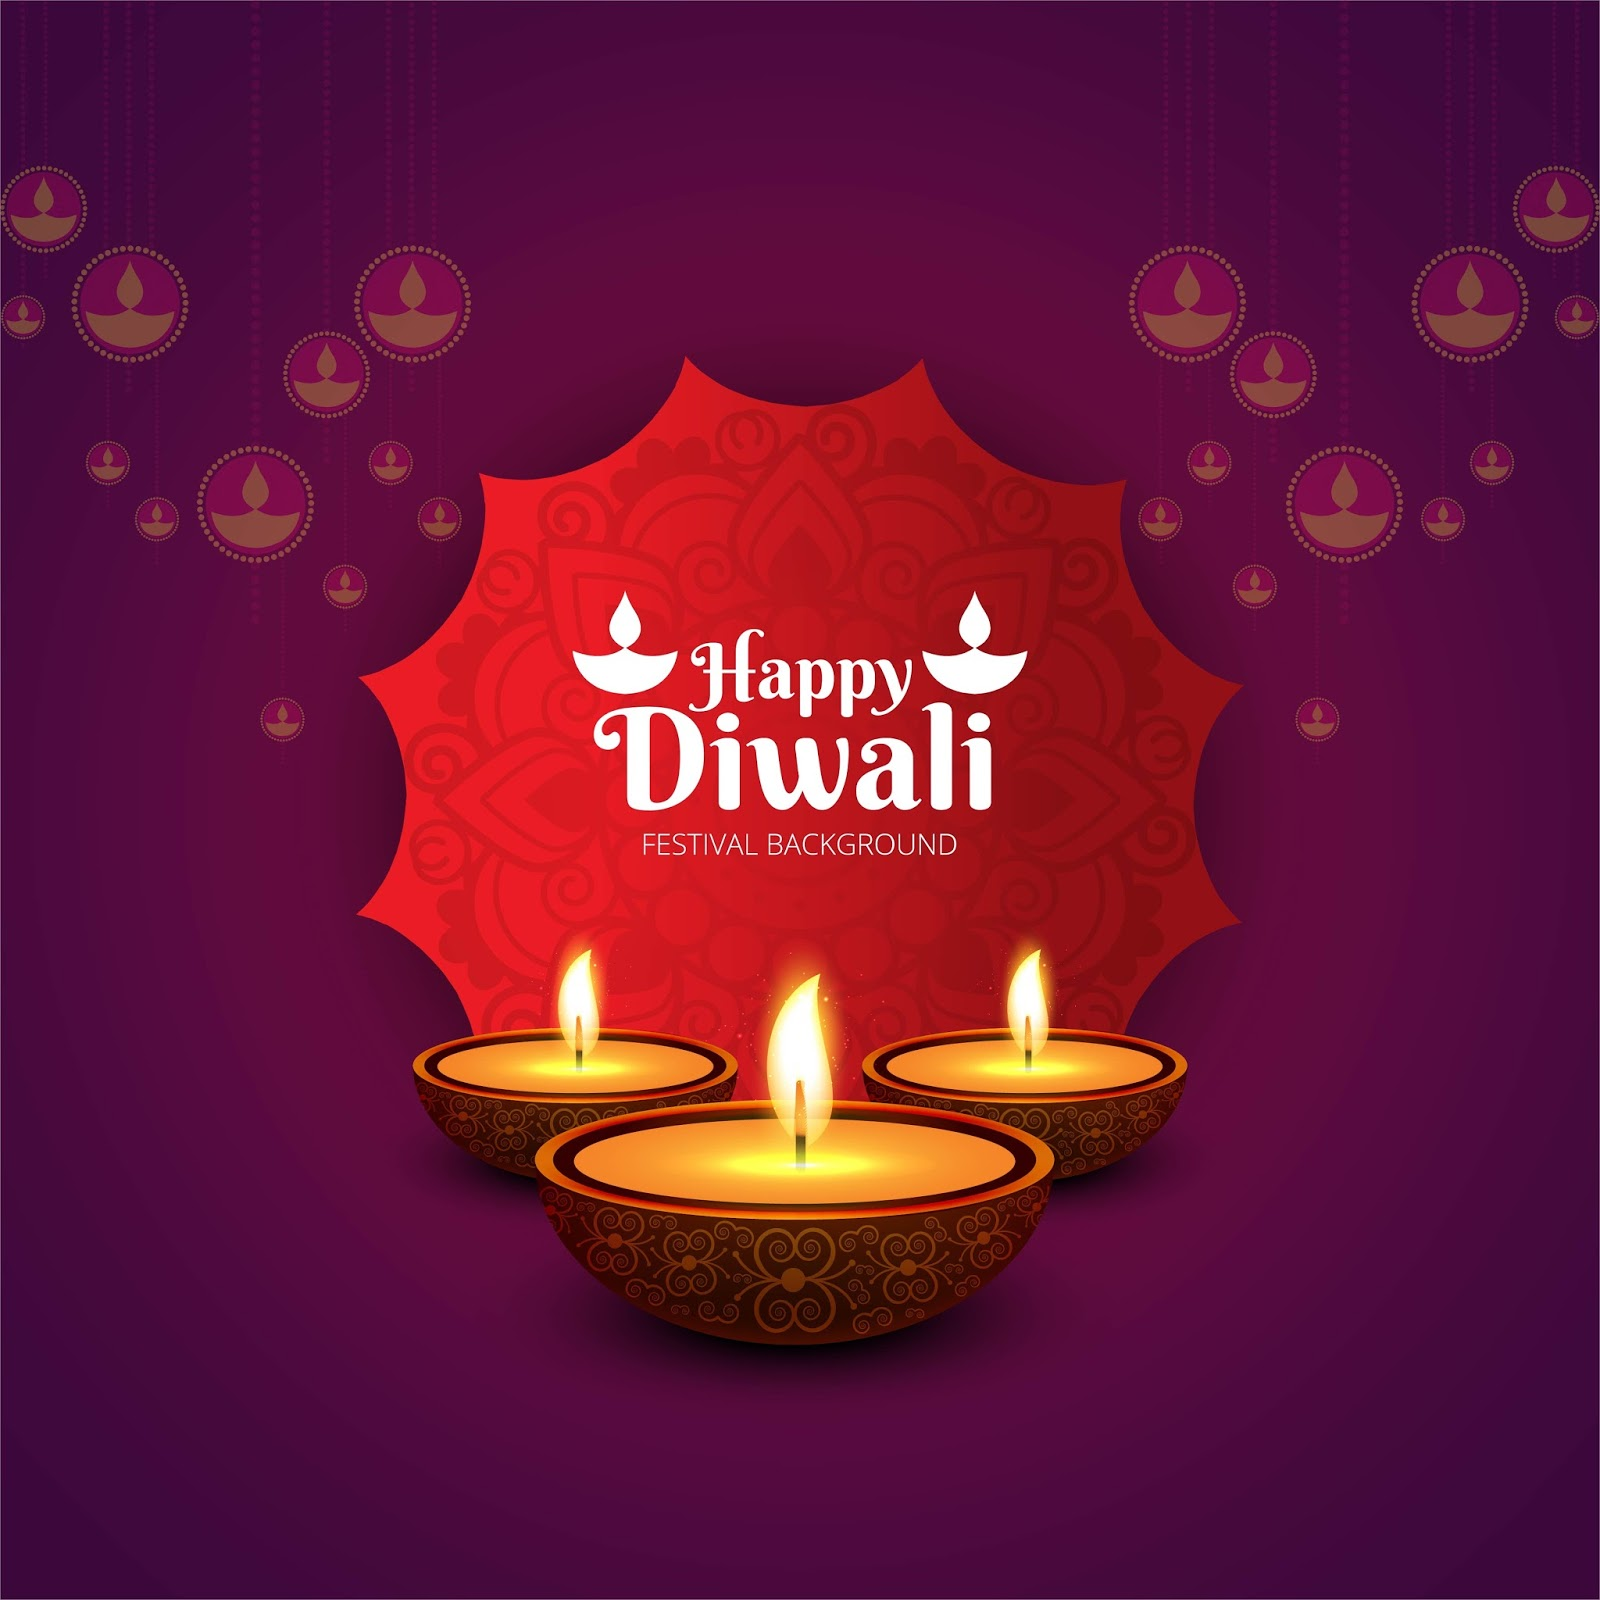 47 beautiful diwali greeting cards and happy diwali wishes beautiful diwali greeting cards with diyas kristyandbryce Image collections